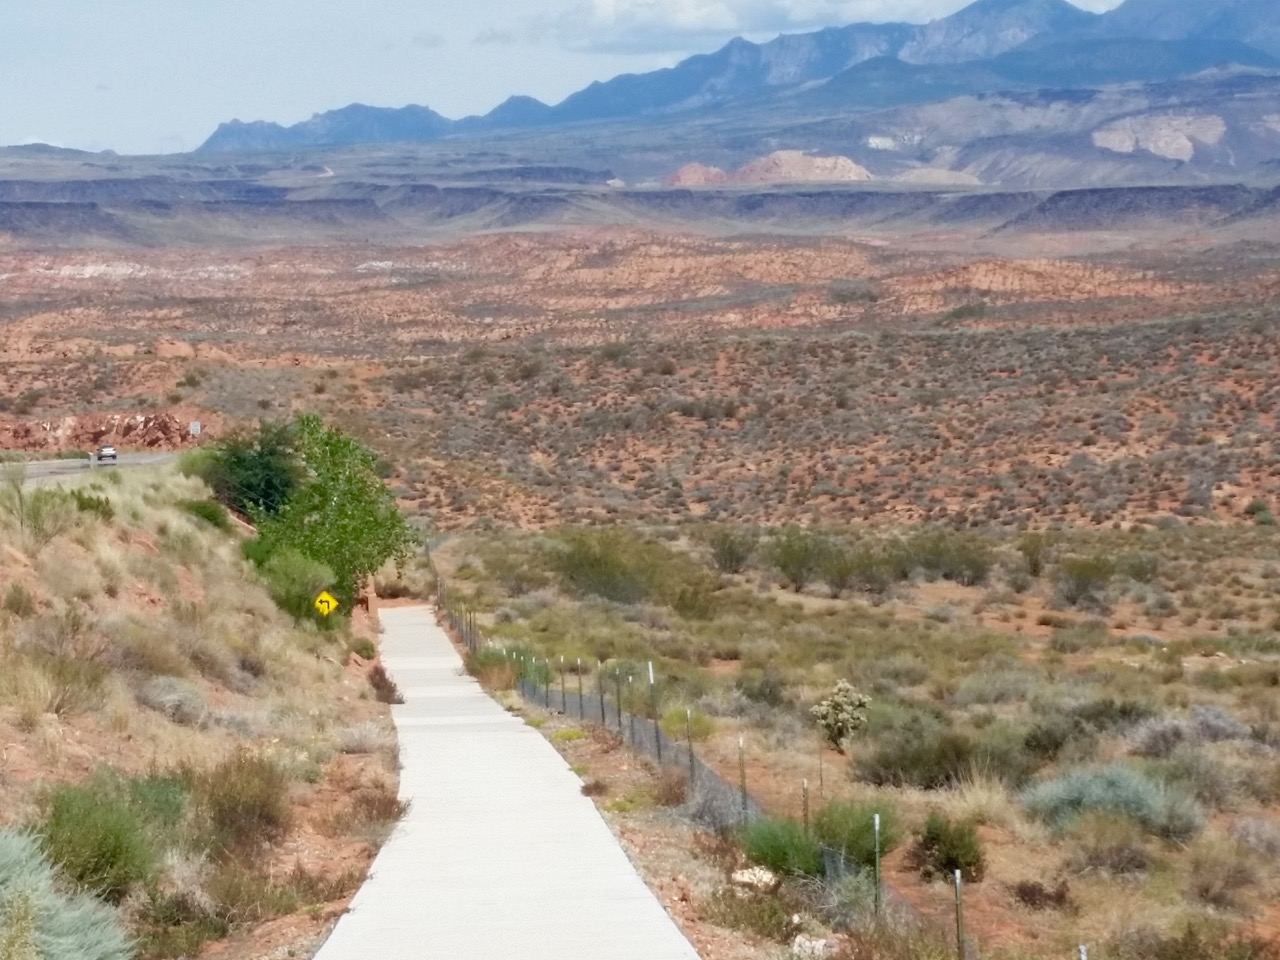 """Red Hills Parkway, known to old-timers as """"Turtle Road,"""" is visible in the far left of the photograph. The Red Cliffs National Conservation Area lies adjacent to much of the population of Washington County, St. George, Utah, Aug. 29, 2015   Photo by Julie Applegate, St. George News"""